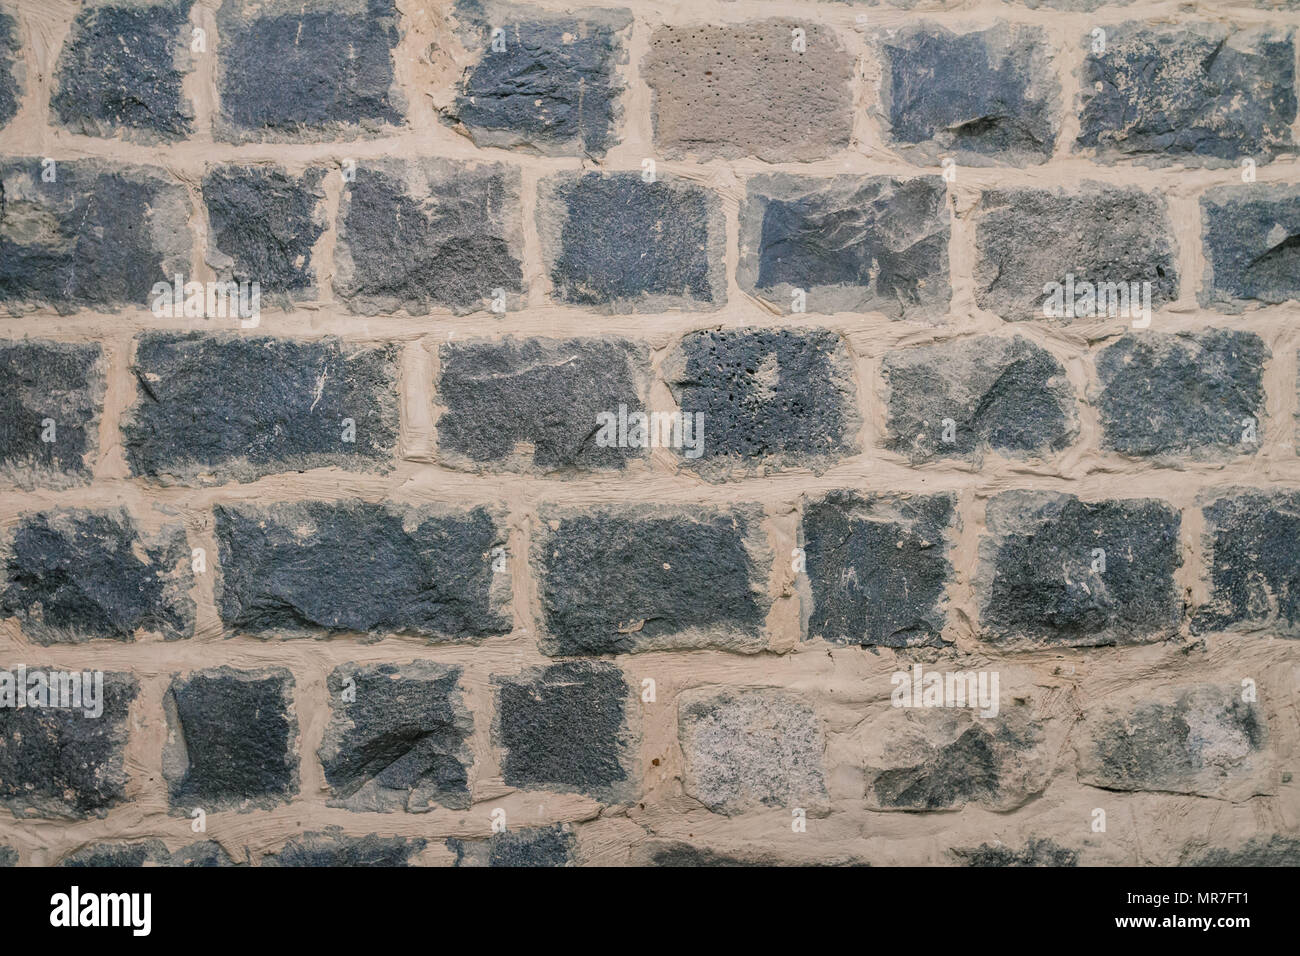 Texture of black basalt brick wall. - Stock Image